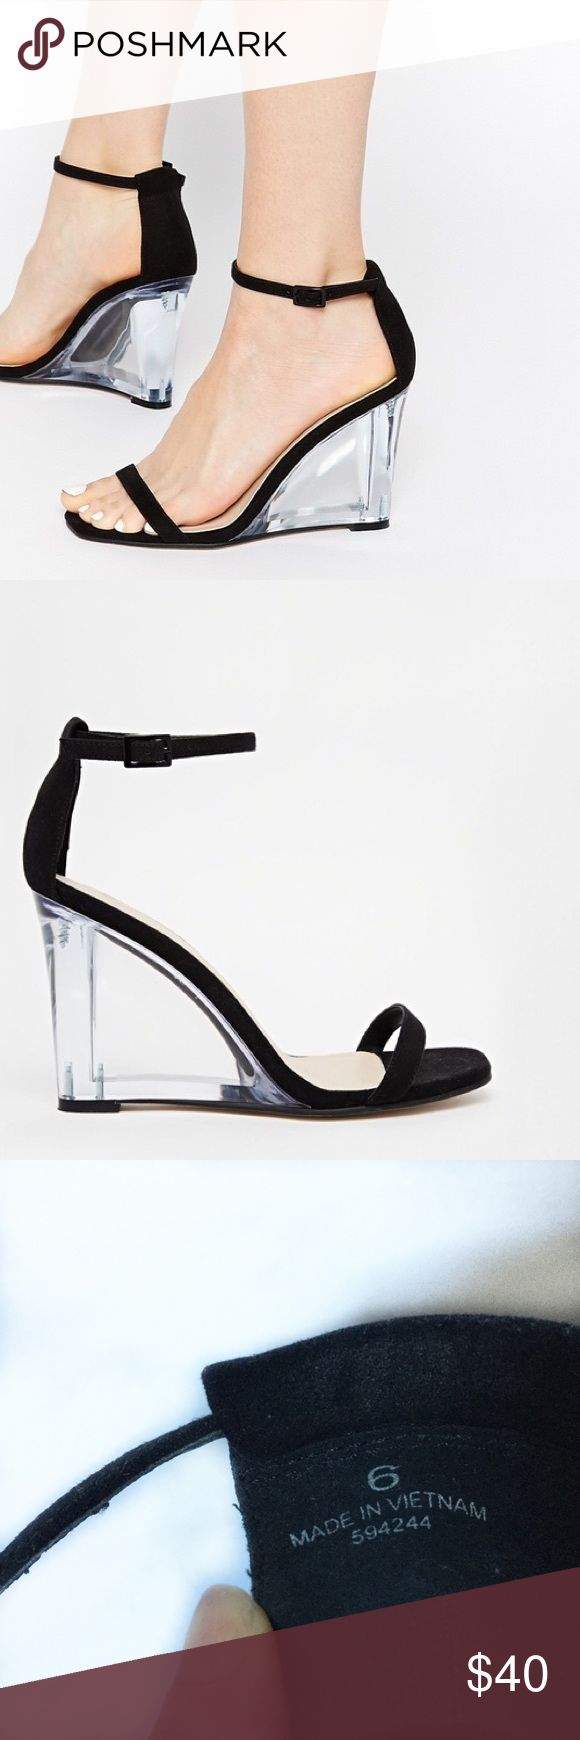 black strap wedge heels - photo #48